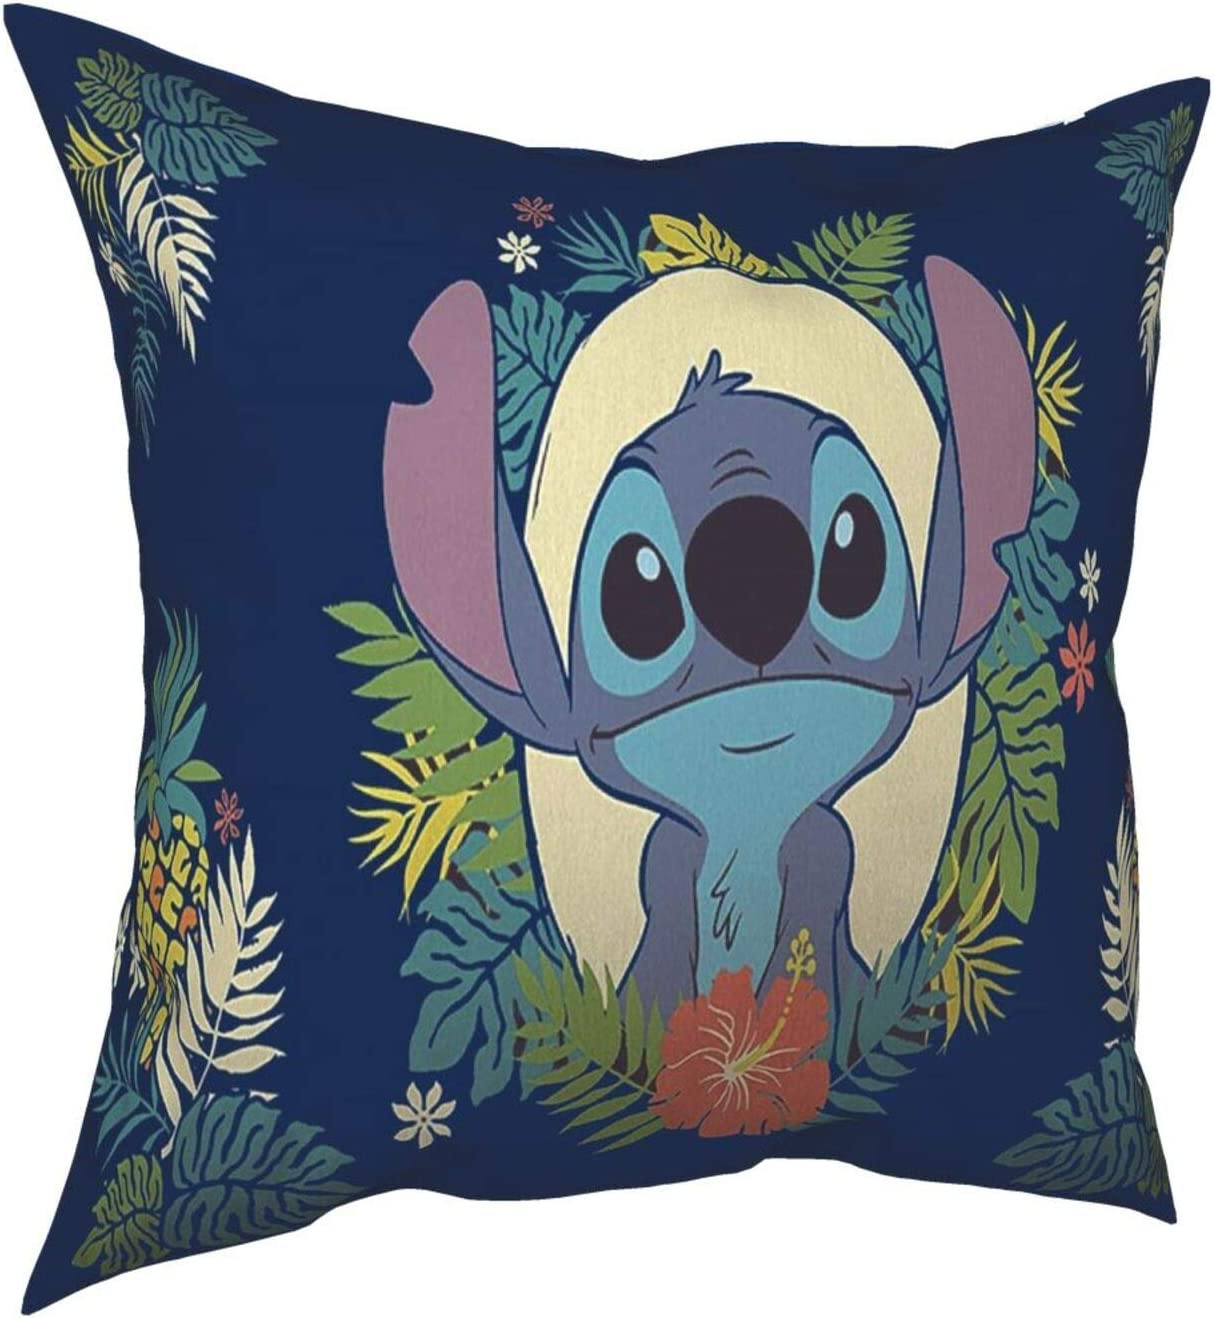 Lilo & Stitch Hawaii Garden Throw Pillow Covers 18 X 18 Inch Decorative Cushion Case Square Soft for Sofa Bed Couch Home(Only Cover No Insert)